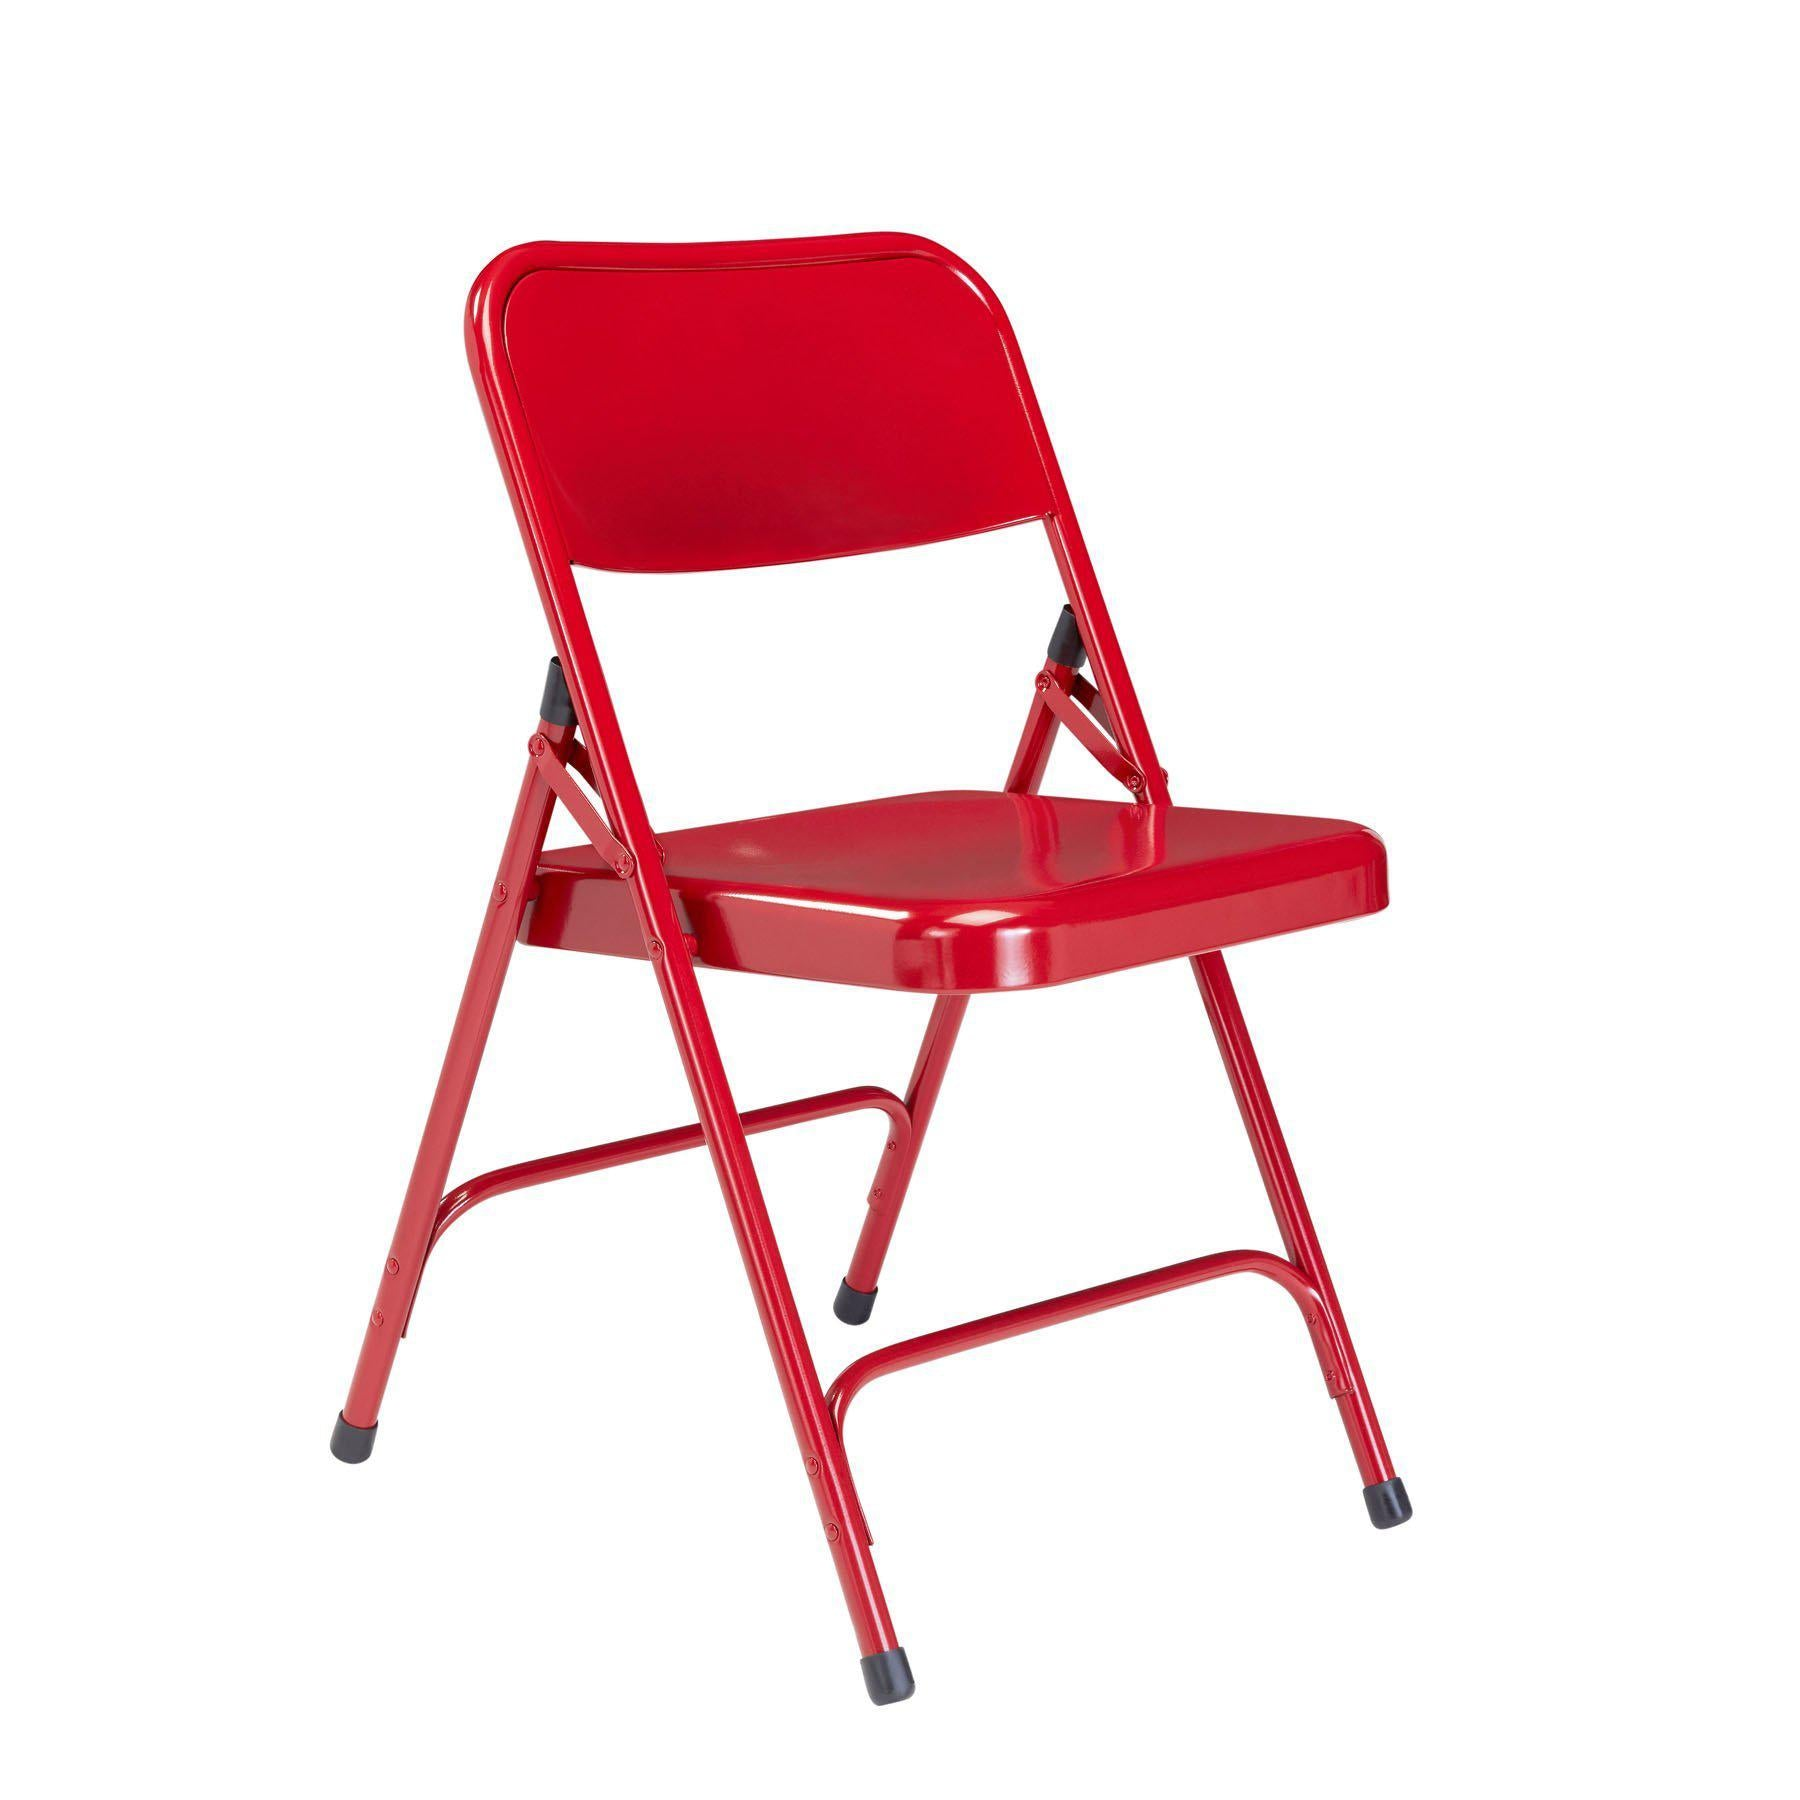 Premium All-Steel Double Hinge Folding Chair